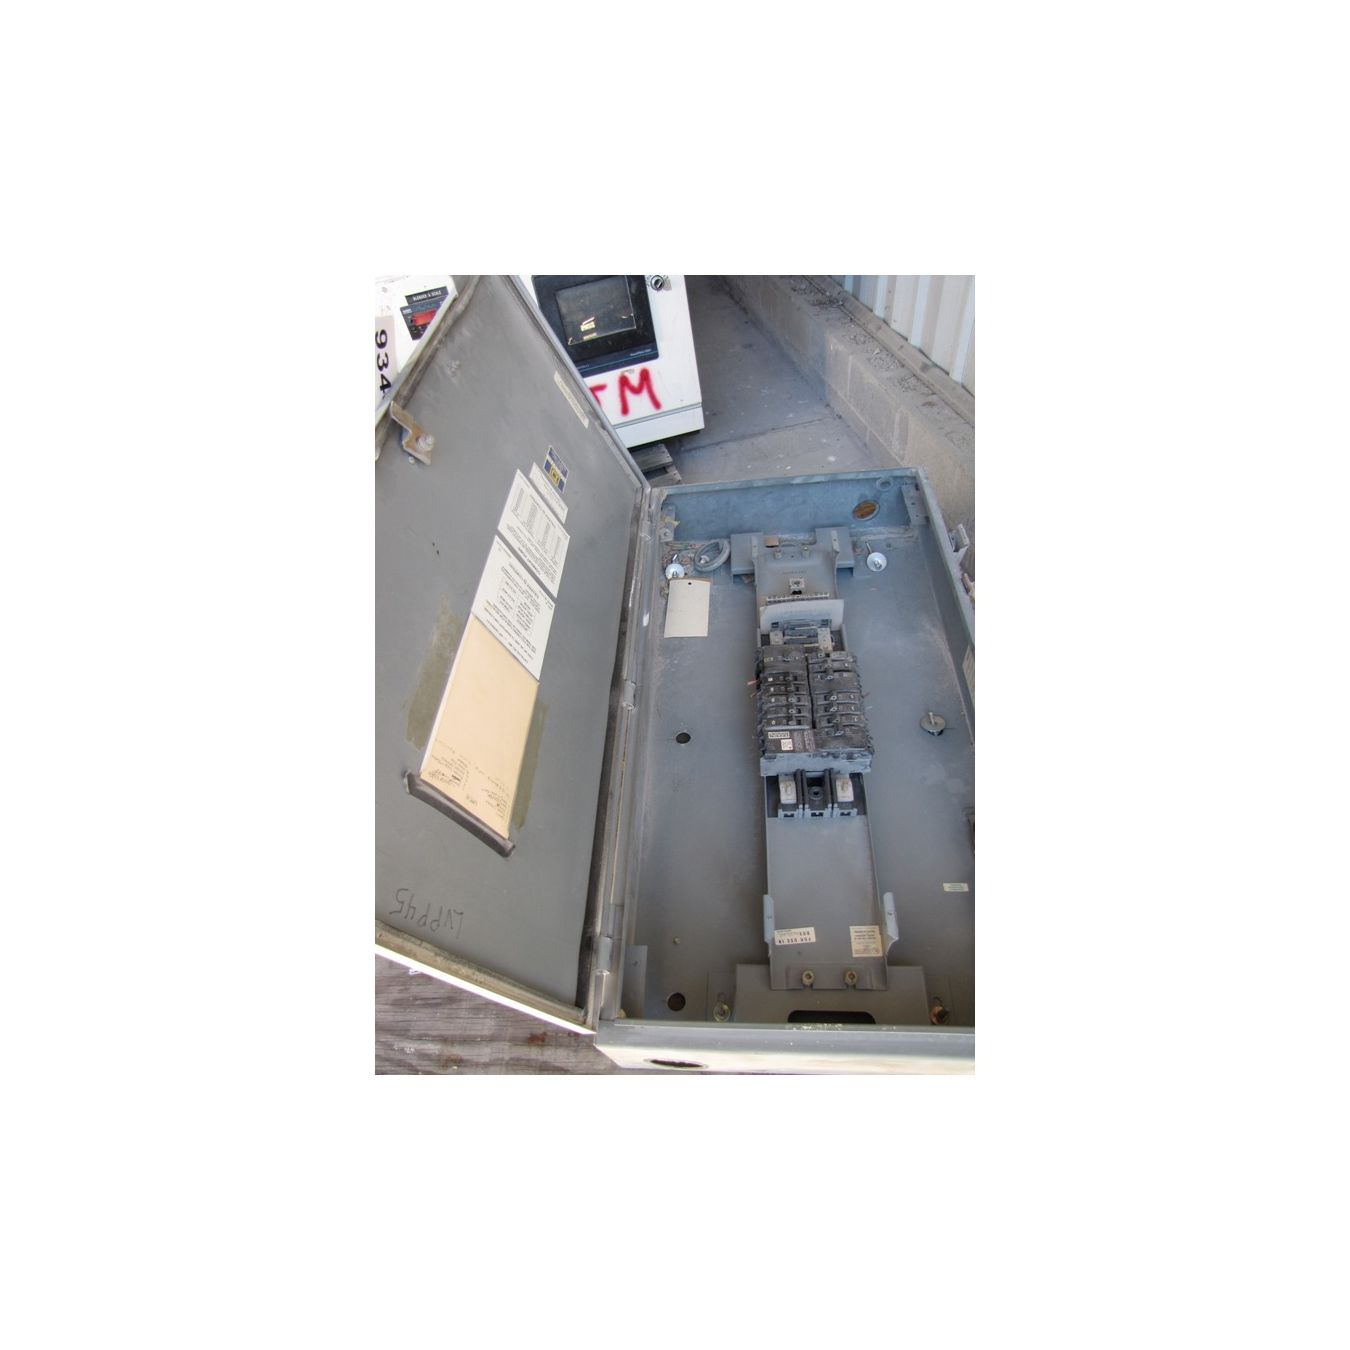 Square D Breaker Box Used Electrical Equipment